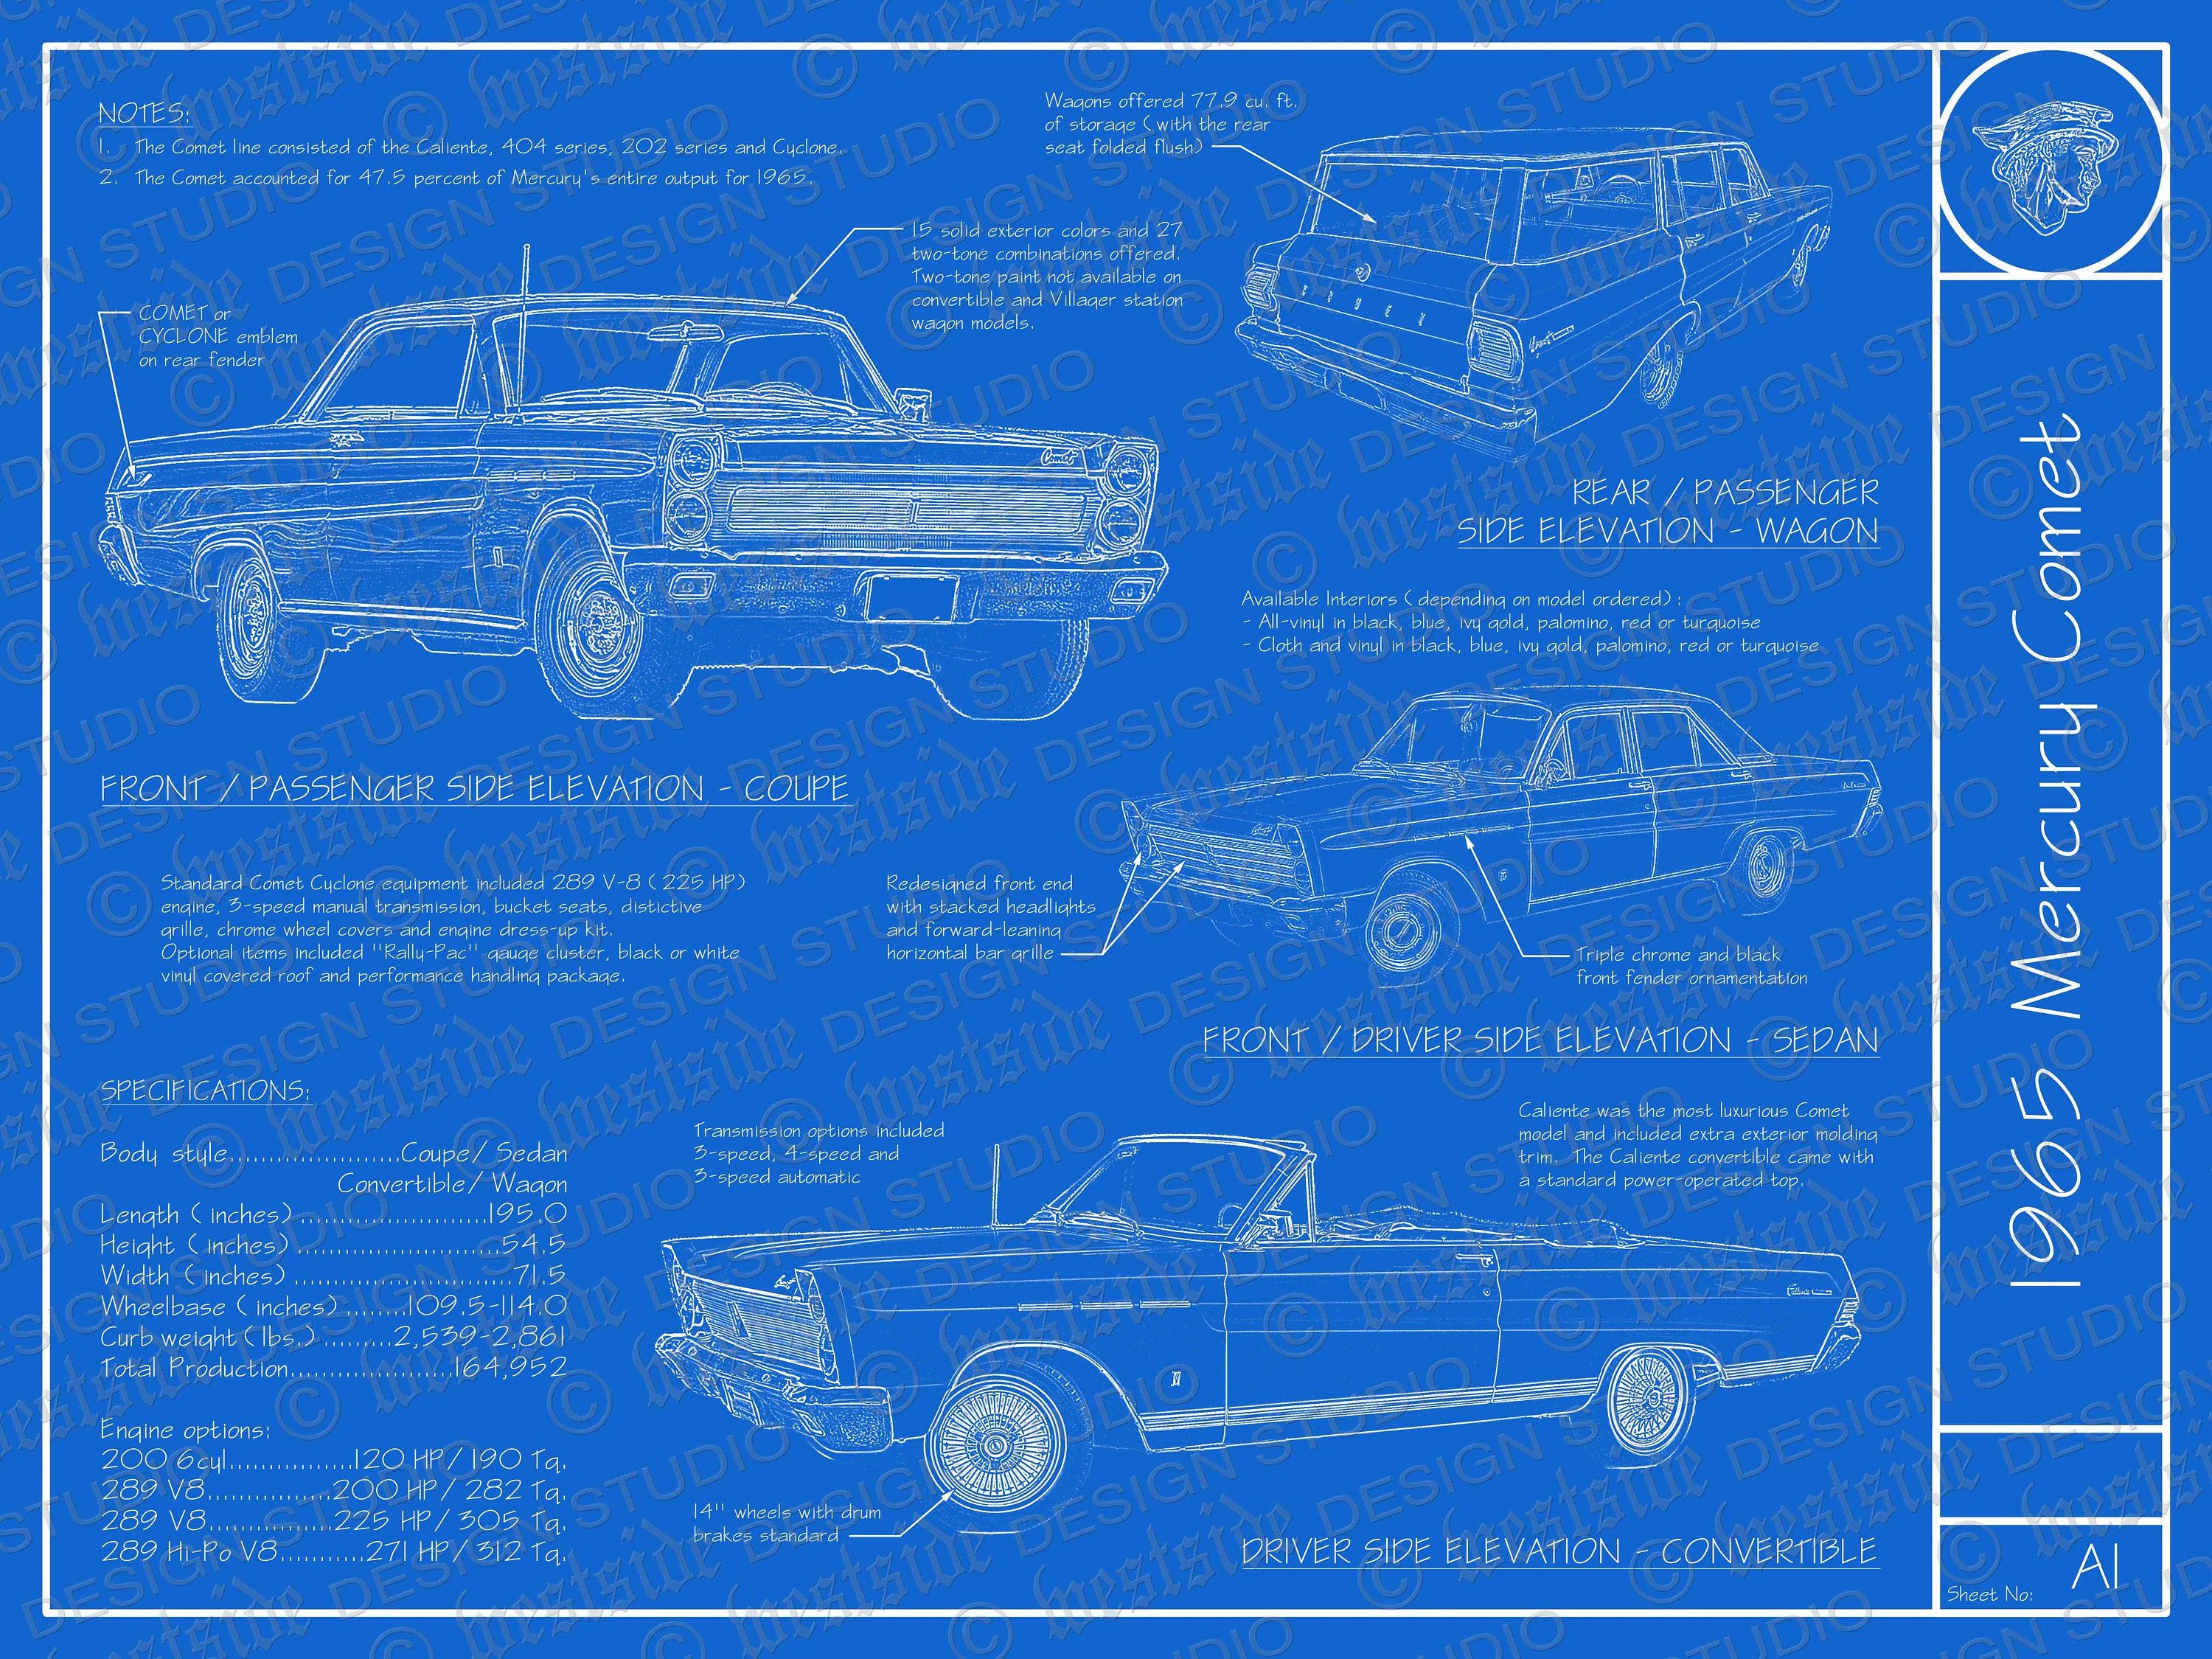 1965 Mercury Comet blueprint poster 18